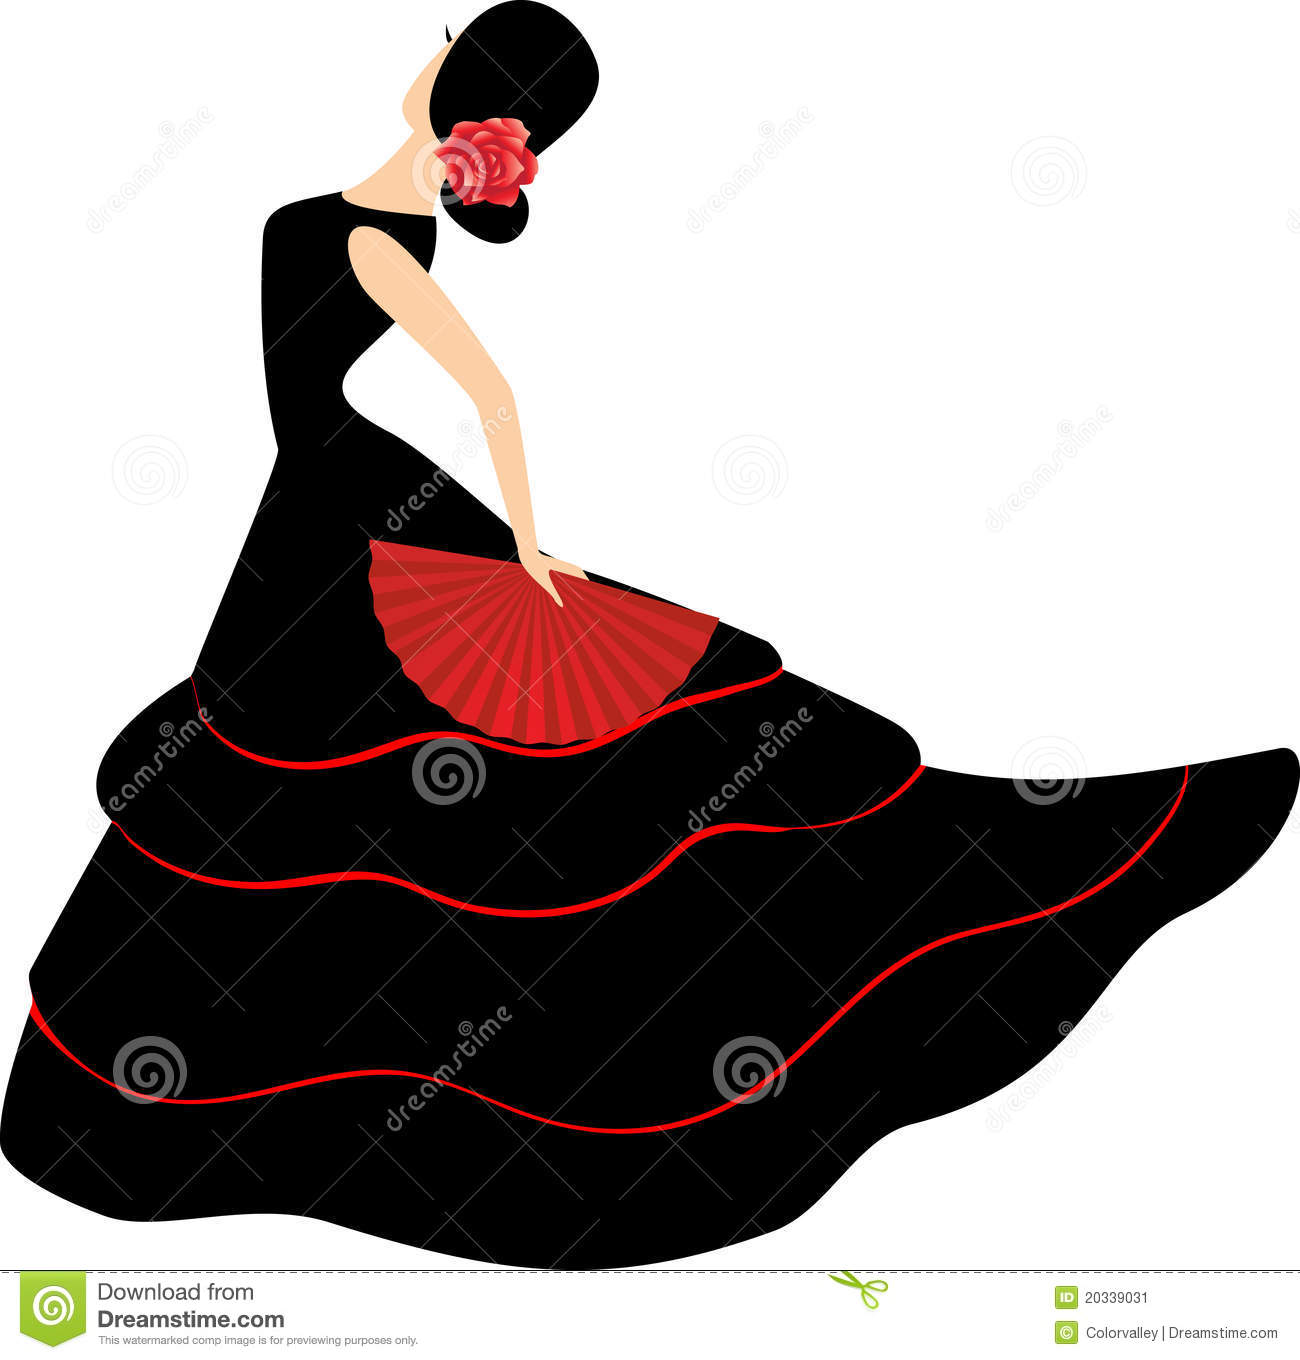 https://thumbs.dreamstime.com/z/flamenco-dancer-spanish-girl-fan-20339031.jpg